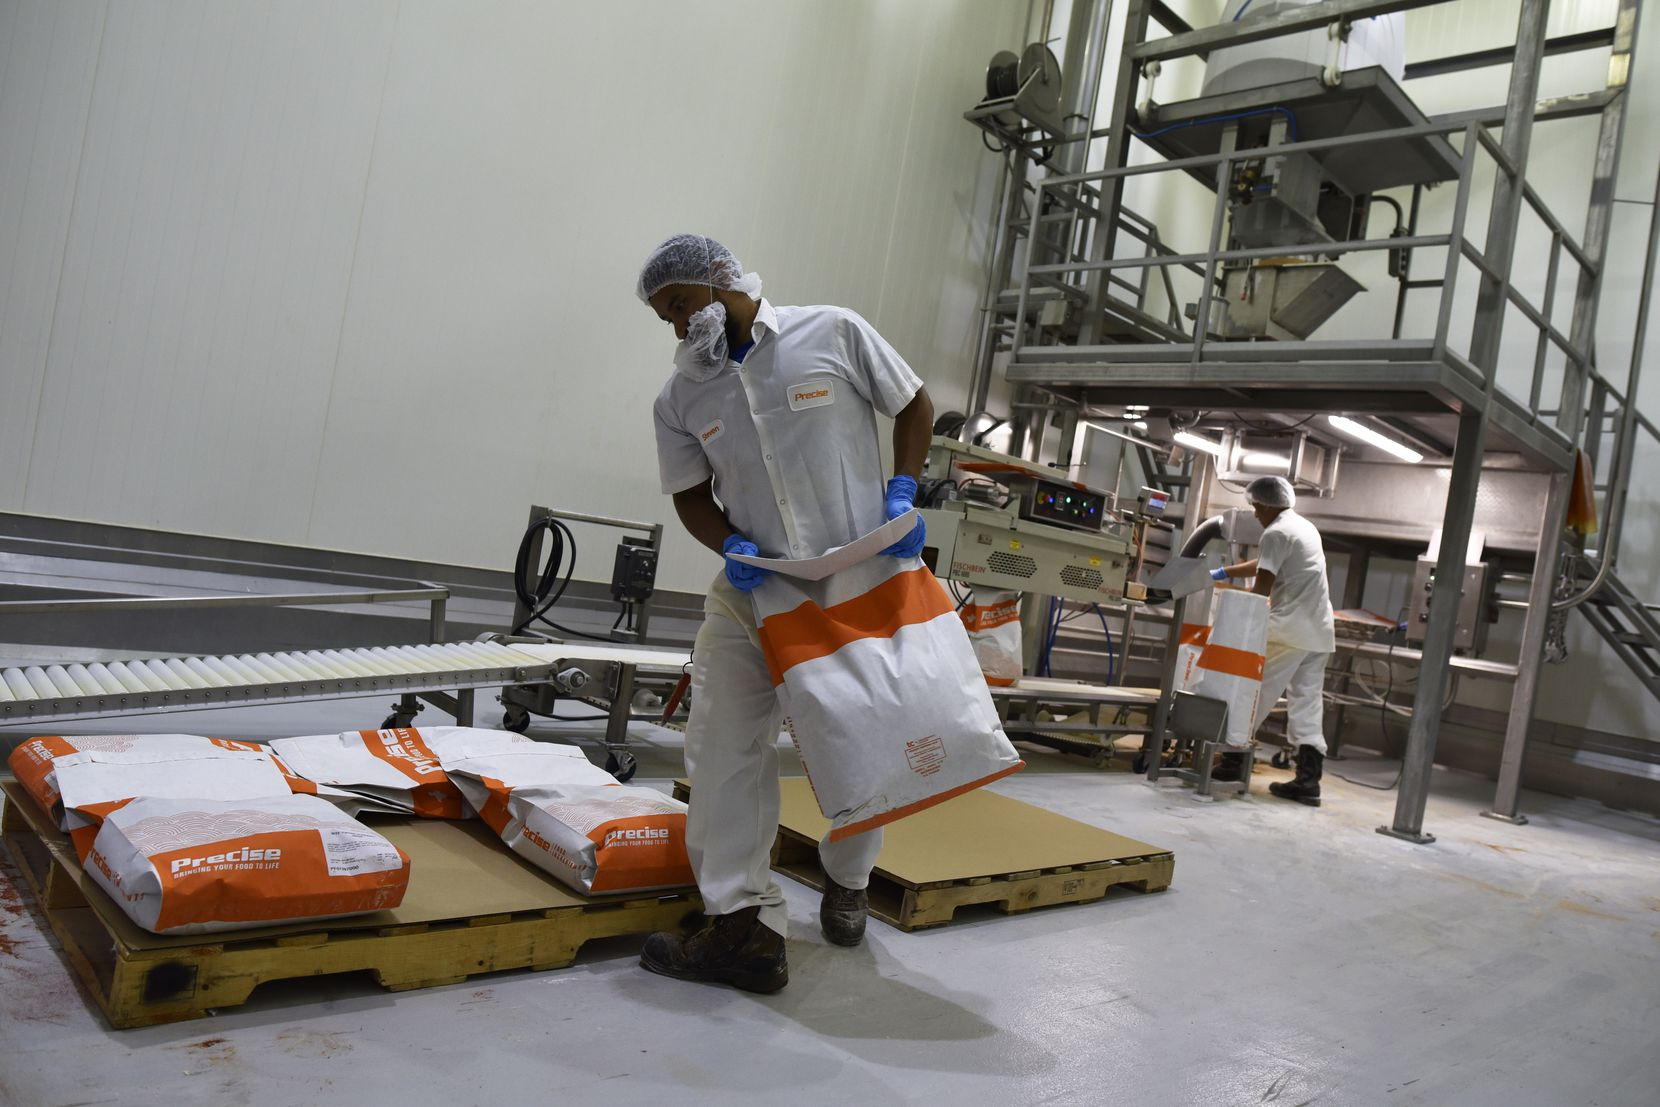 Packaging operators Steven Gallego (left) and Xavier Meza packed beef topping seasoning at a warehouse for Precise Food Ingredients in Carrollton in 2019.